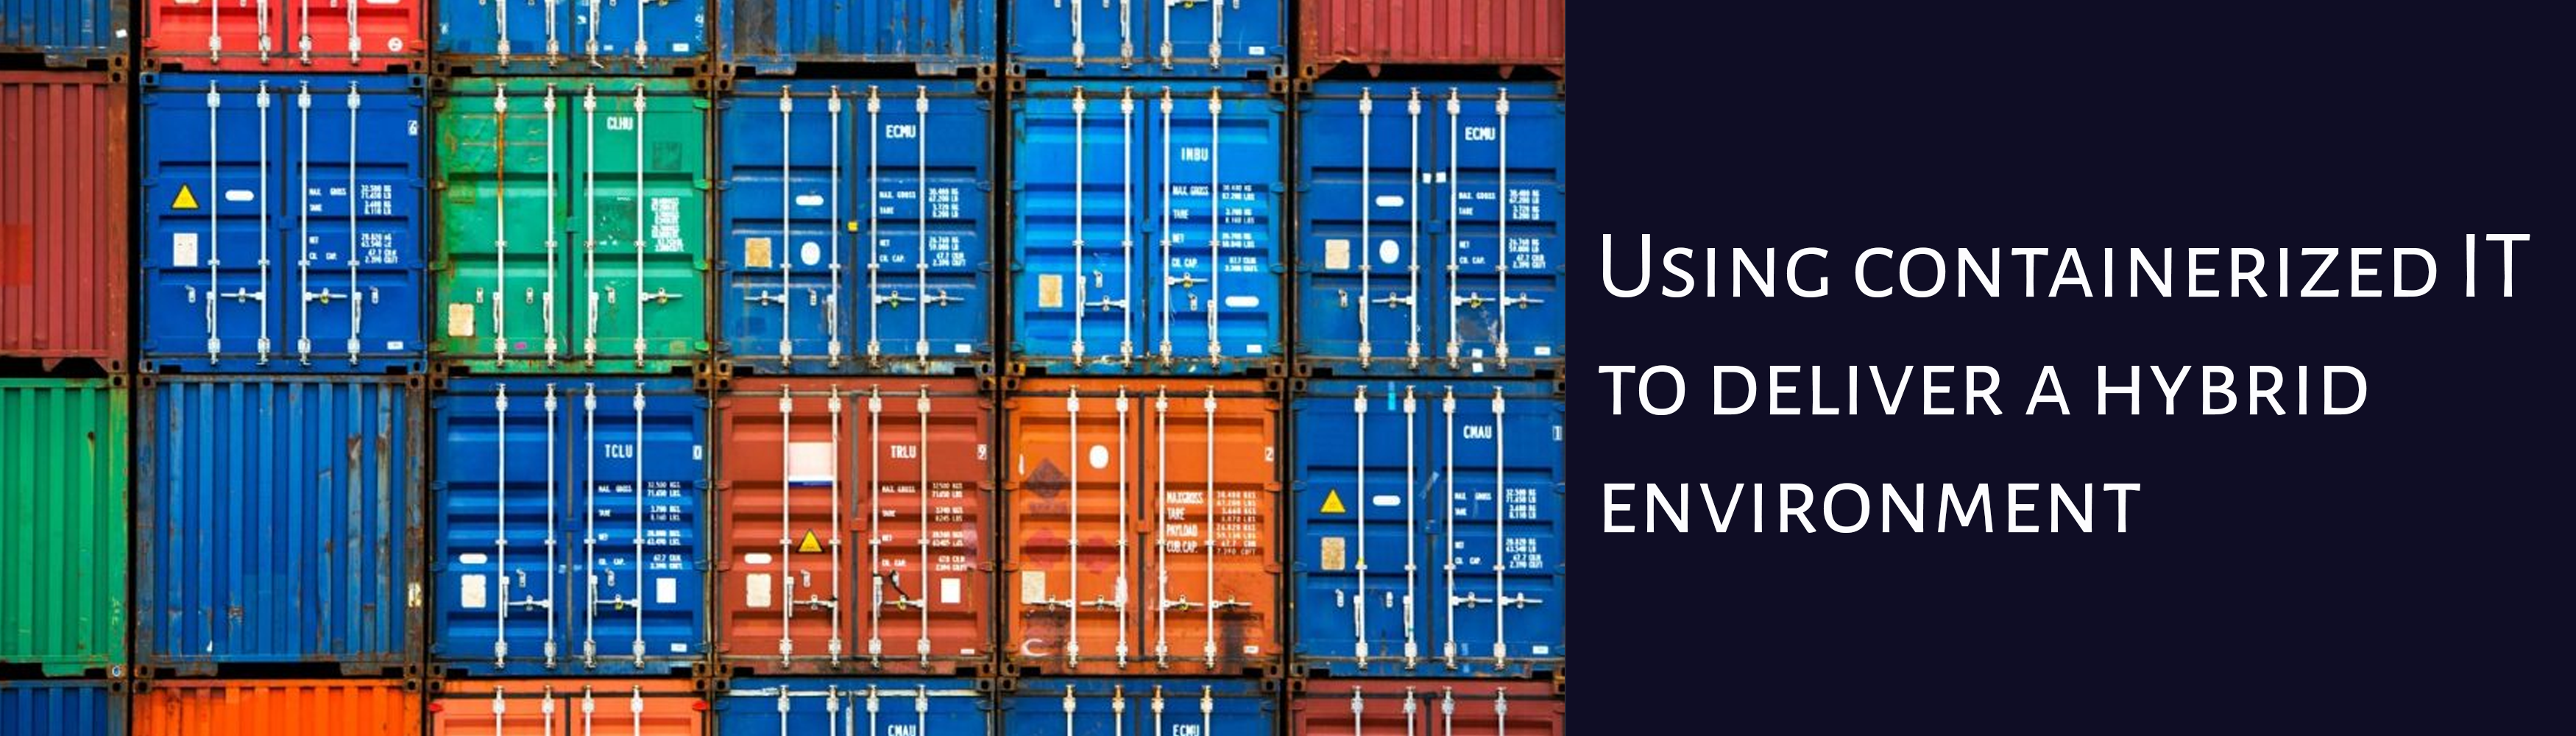 Using containerized IT to deliver a hybrid environment